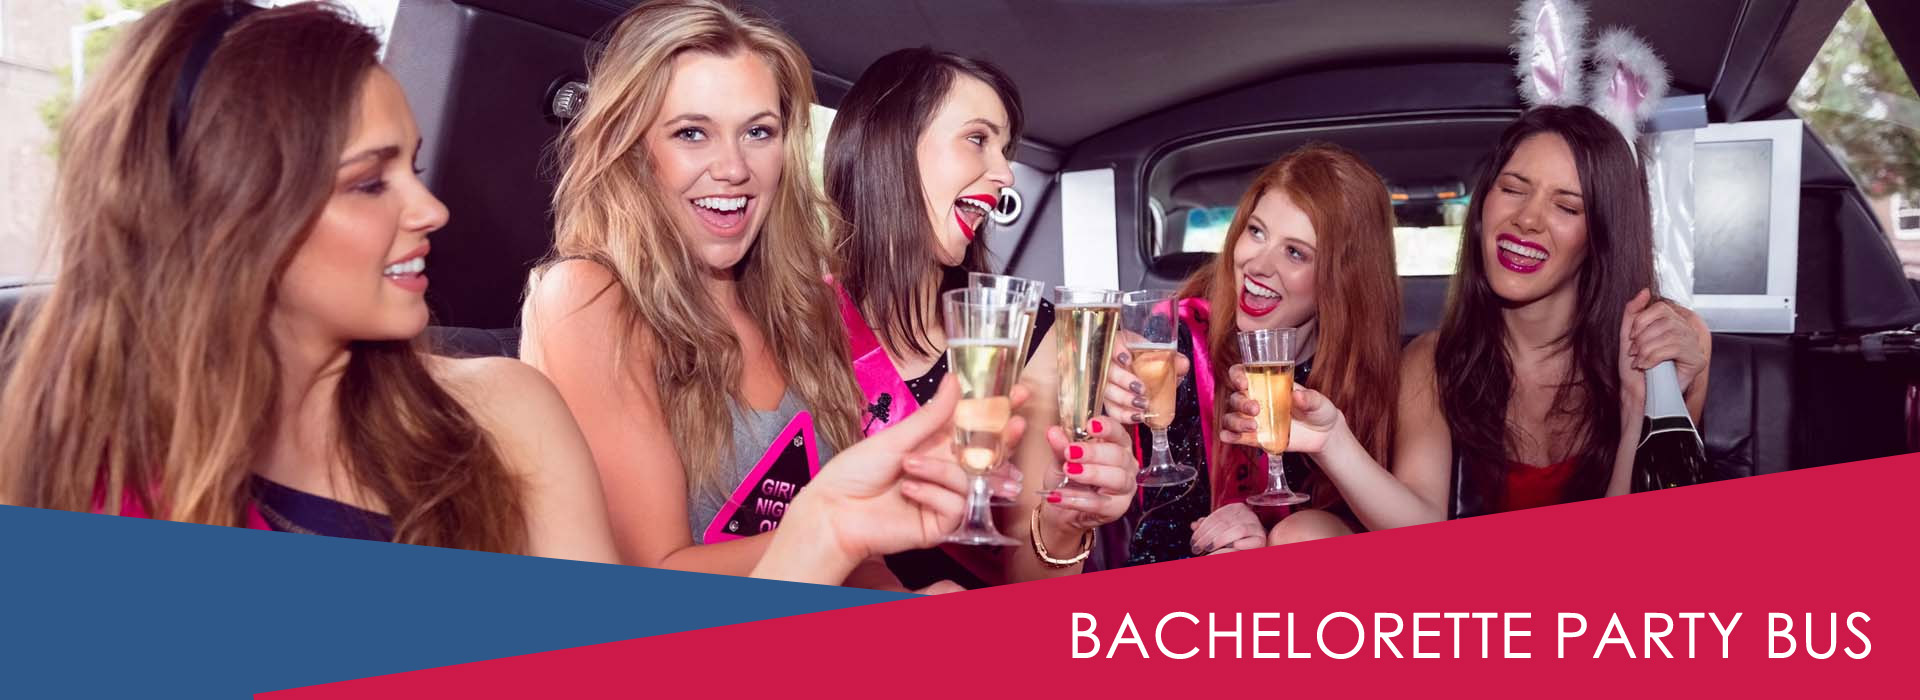 Bachelorette Party Bus Las Vegas